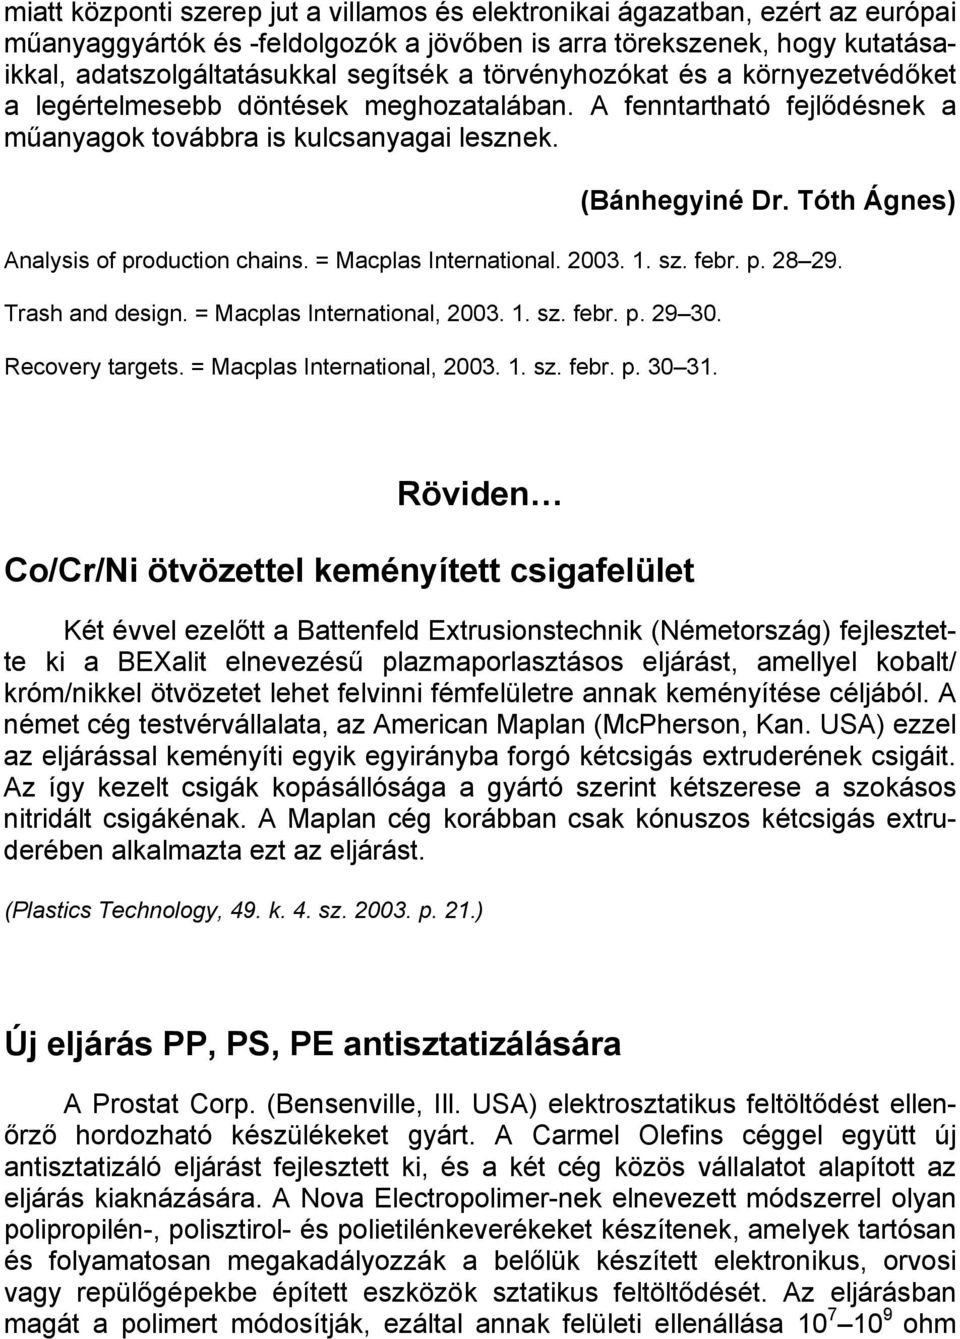 Tóth Ágnes) Analysis of production chains. = Macplas International. 2003. 1. sz. febr. p. 28 29. Trash and design. = Macplas International, 2003. 1. sz. febr. p. 29 30. Recovery targets.